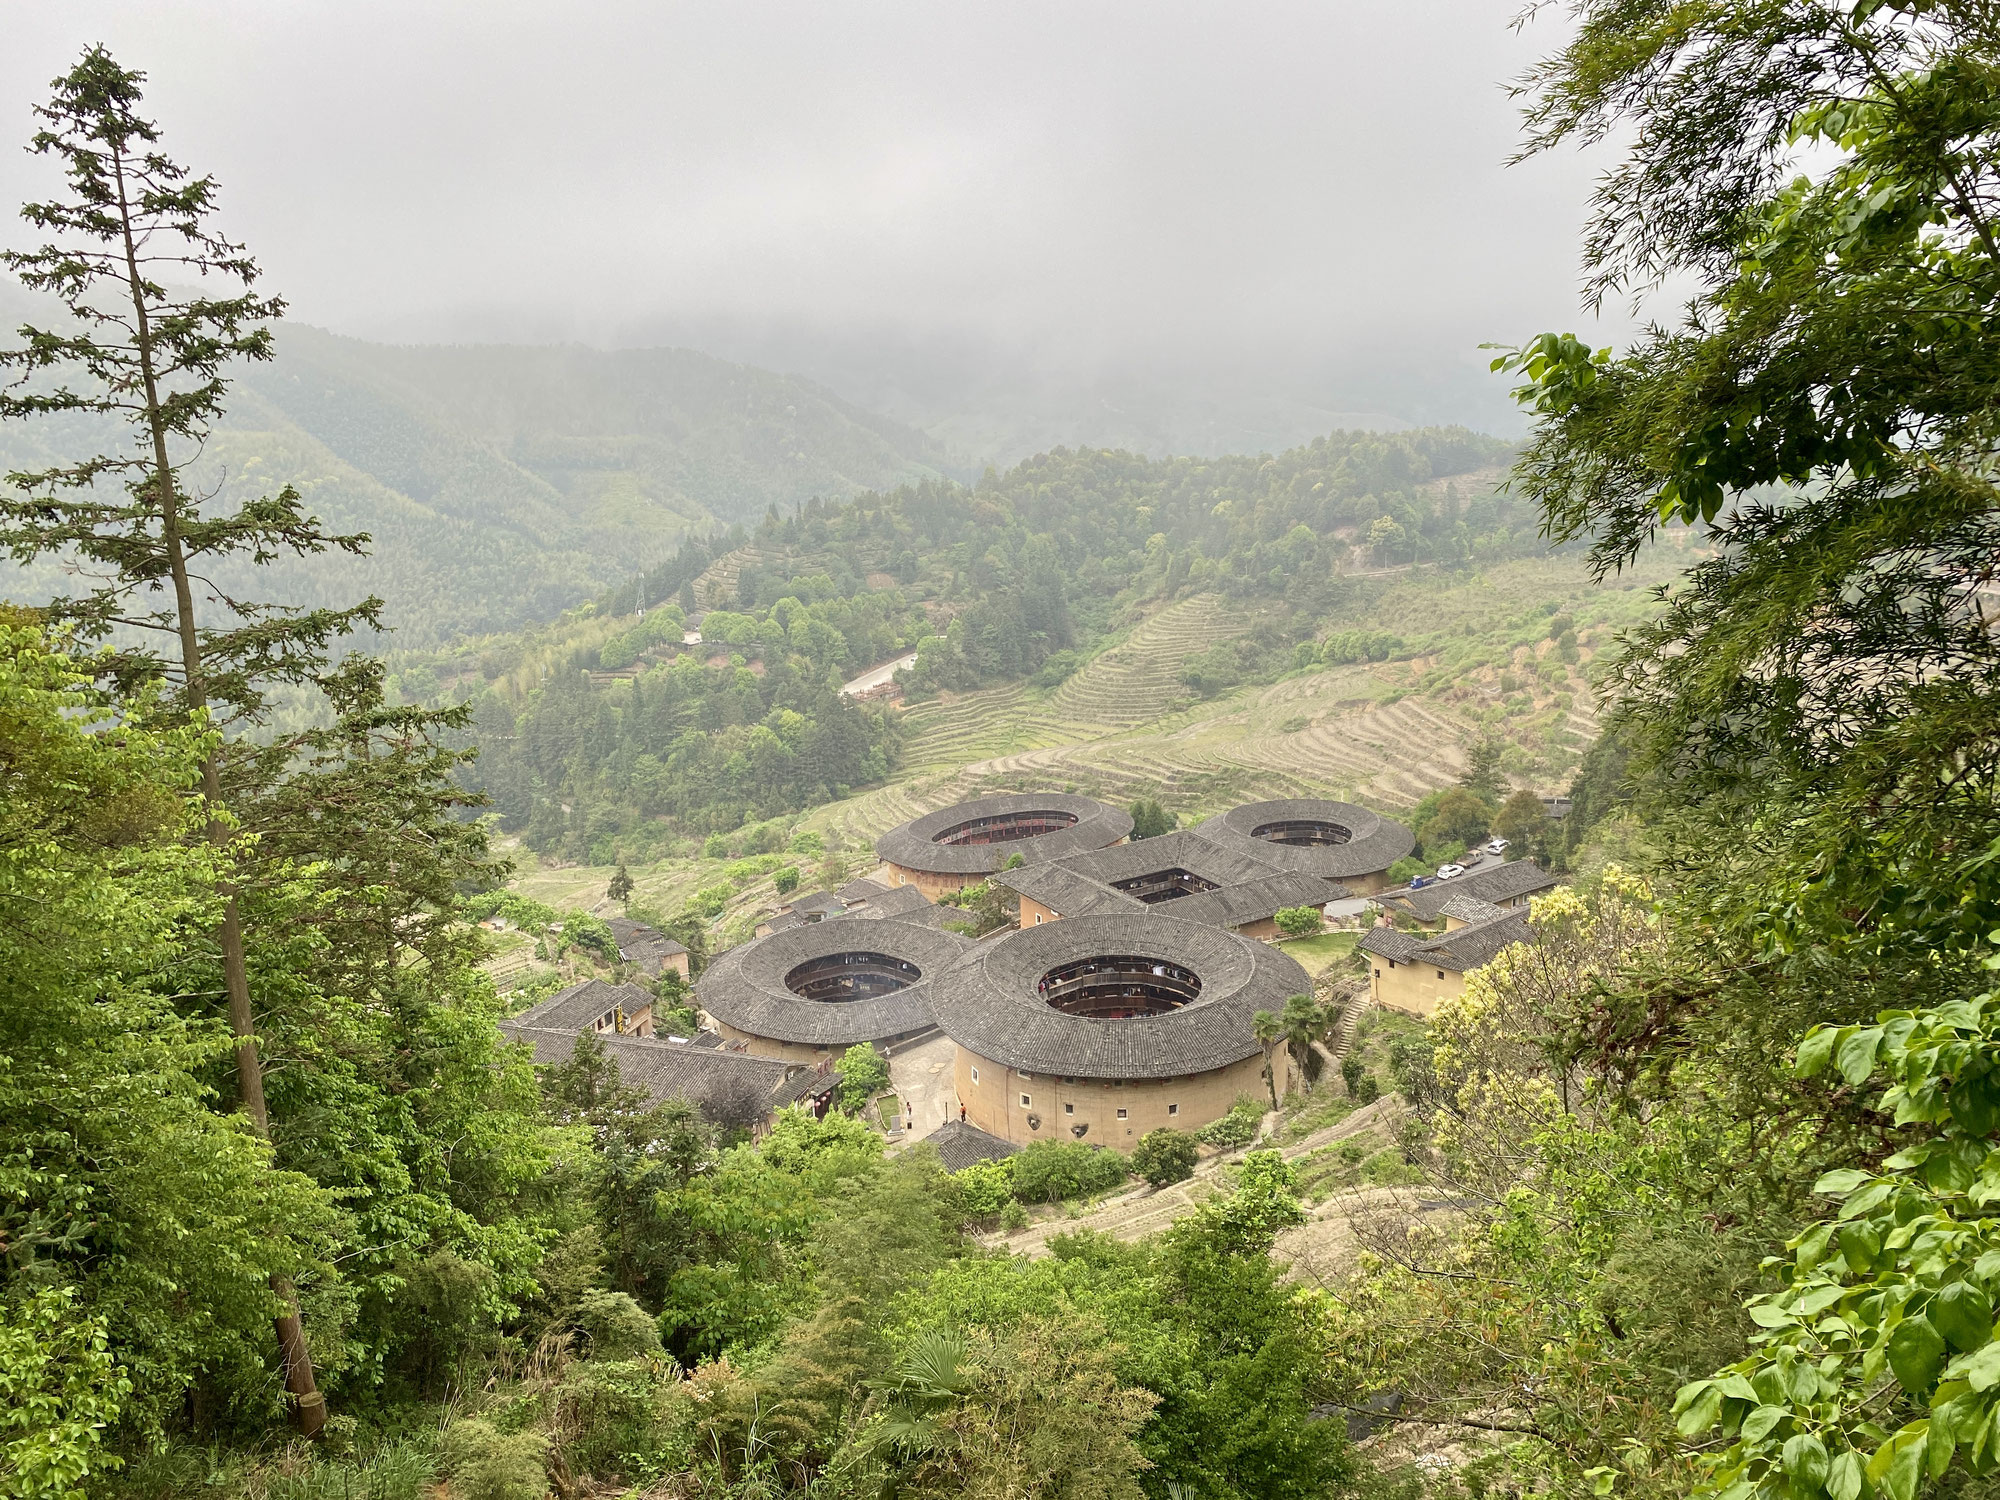 Tulou or not tulou: that is the question.